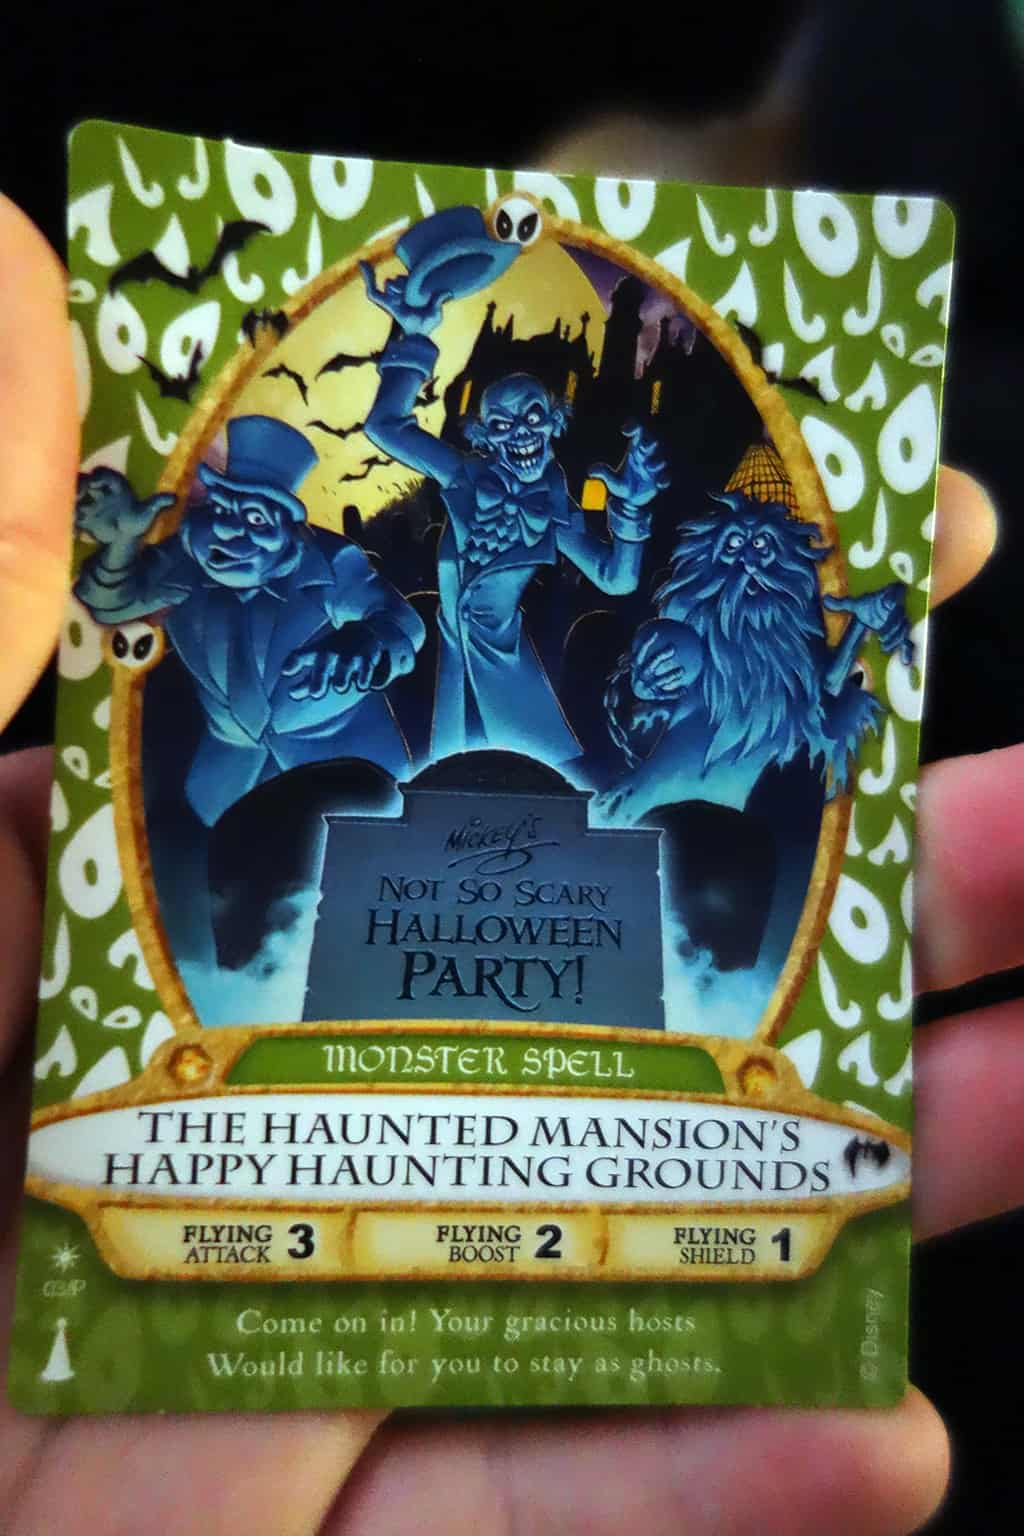 This is the Limited Edition Sorcerers of the Magic Kingdom card.  The thing is fetching like $50 on Ebay.  Hmmm pirate, ebay, free mnsshp visit...  Give me two $20's or dinner at a nice restaurant and it's yours :)